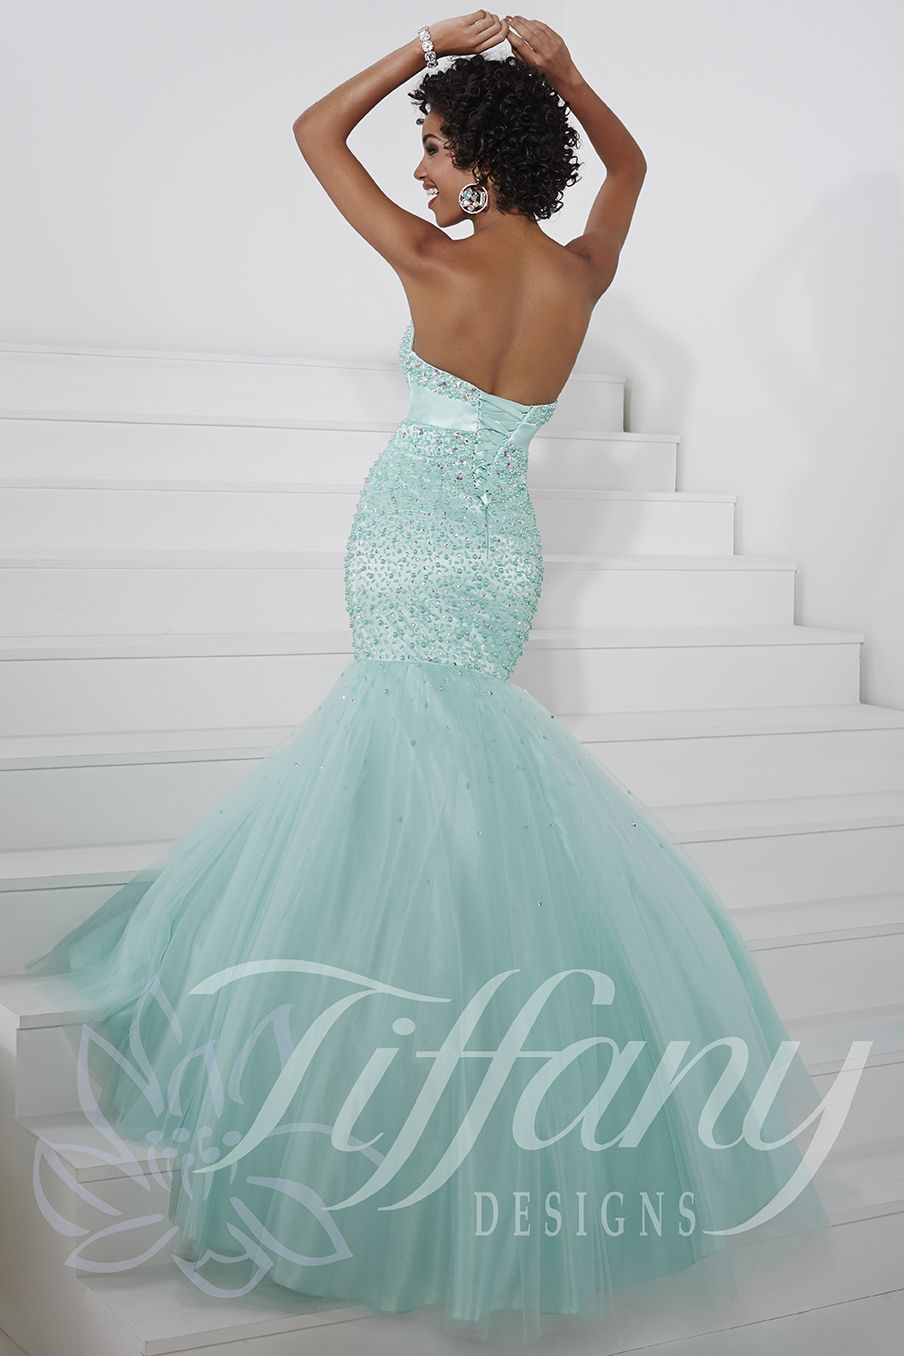 Tiffany Designs Style 16086: This gorgeous gown has a strapless ...